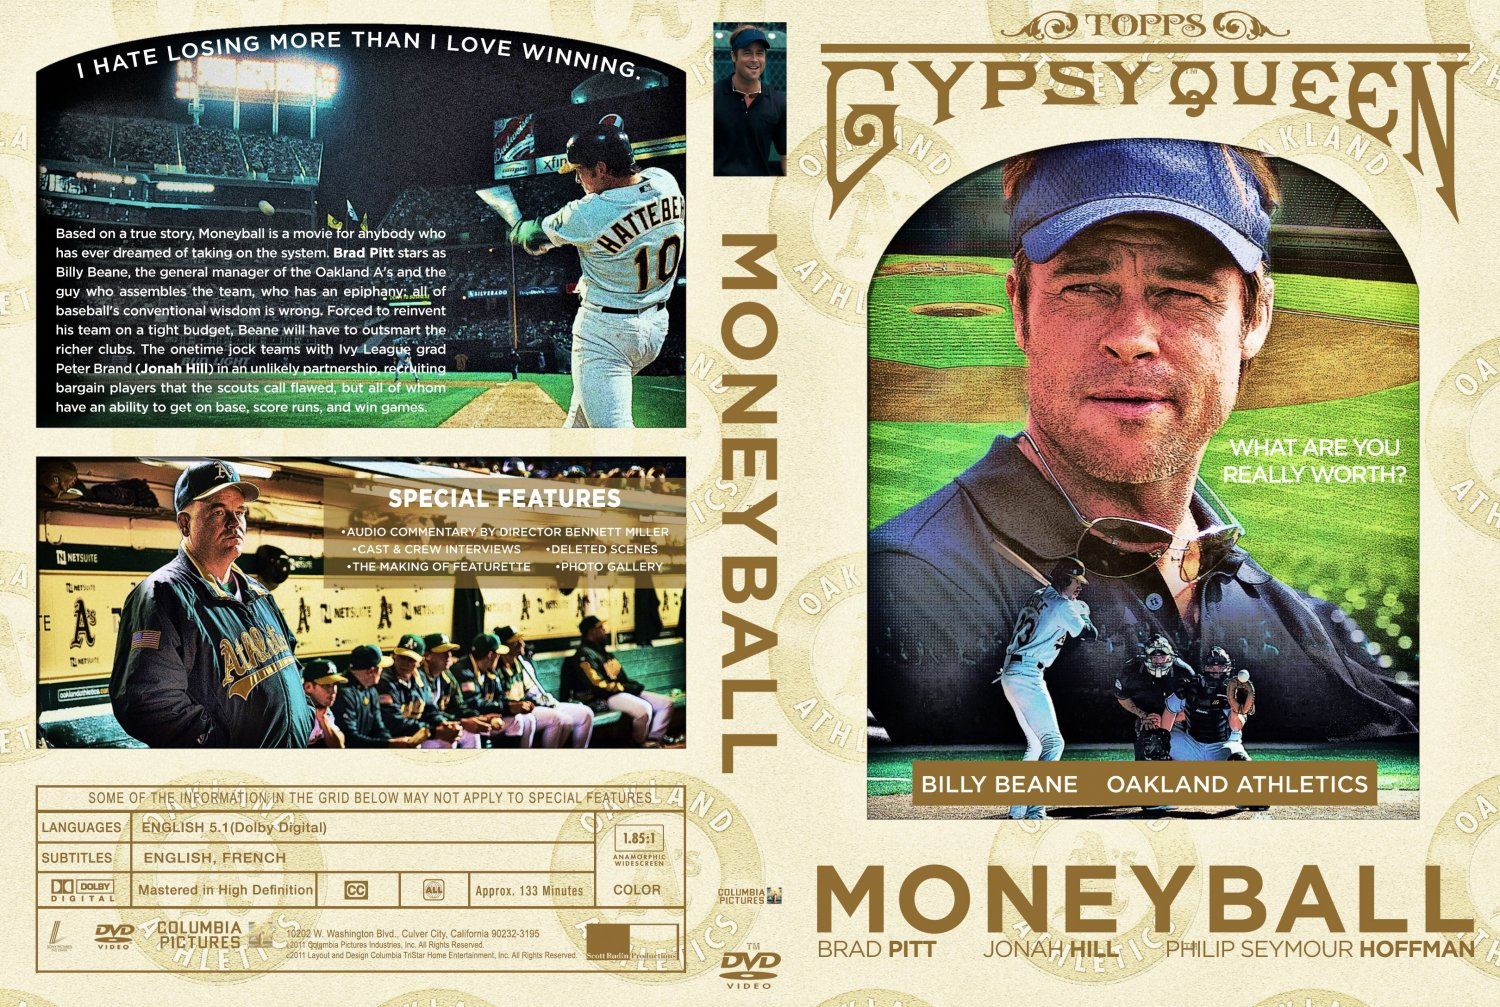 case analysis moneyball Chapter 52 case study: moneyball moneyball: the art of winning an unfair game is a book by michael lewis about the oakland athletics baseball team and its general manager, the person tasked with building the team, billy beane traditionally, baseball teams use scouts to help them decide what players to hire these scouts evaluate players by observing them perform.